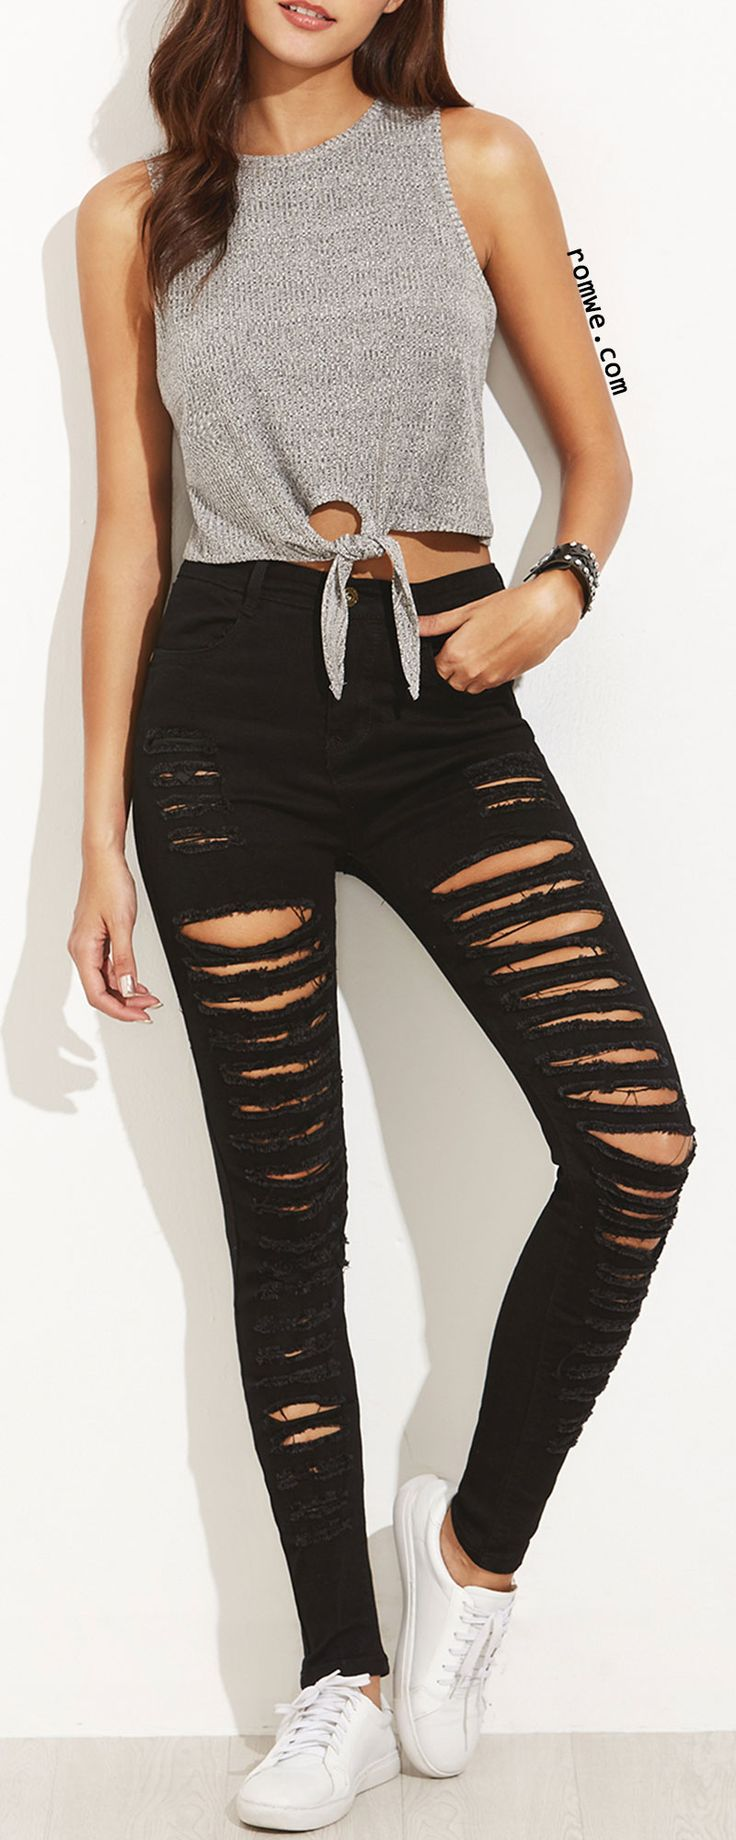 Love the top! (not really into the shredded jeans)